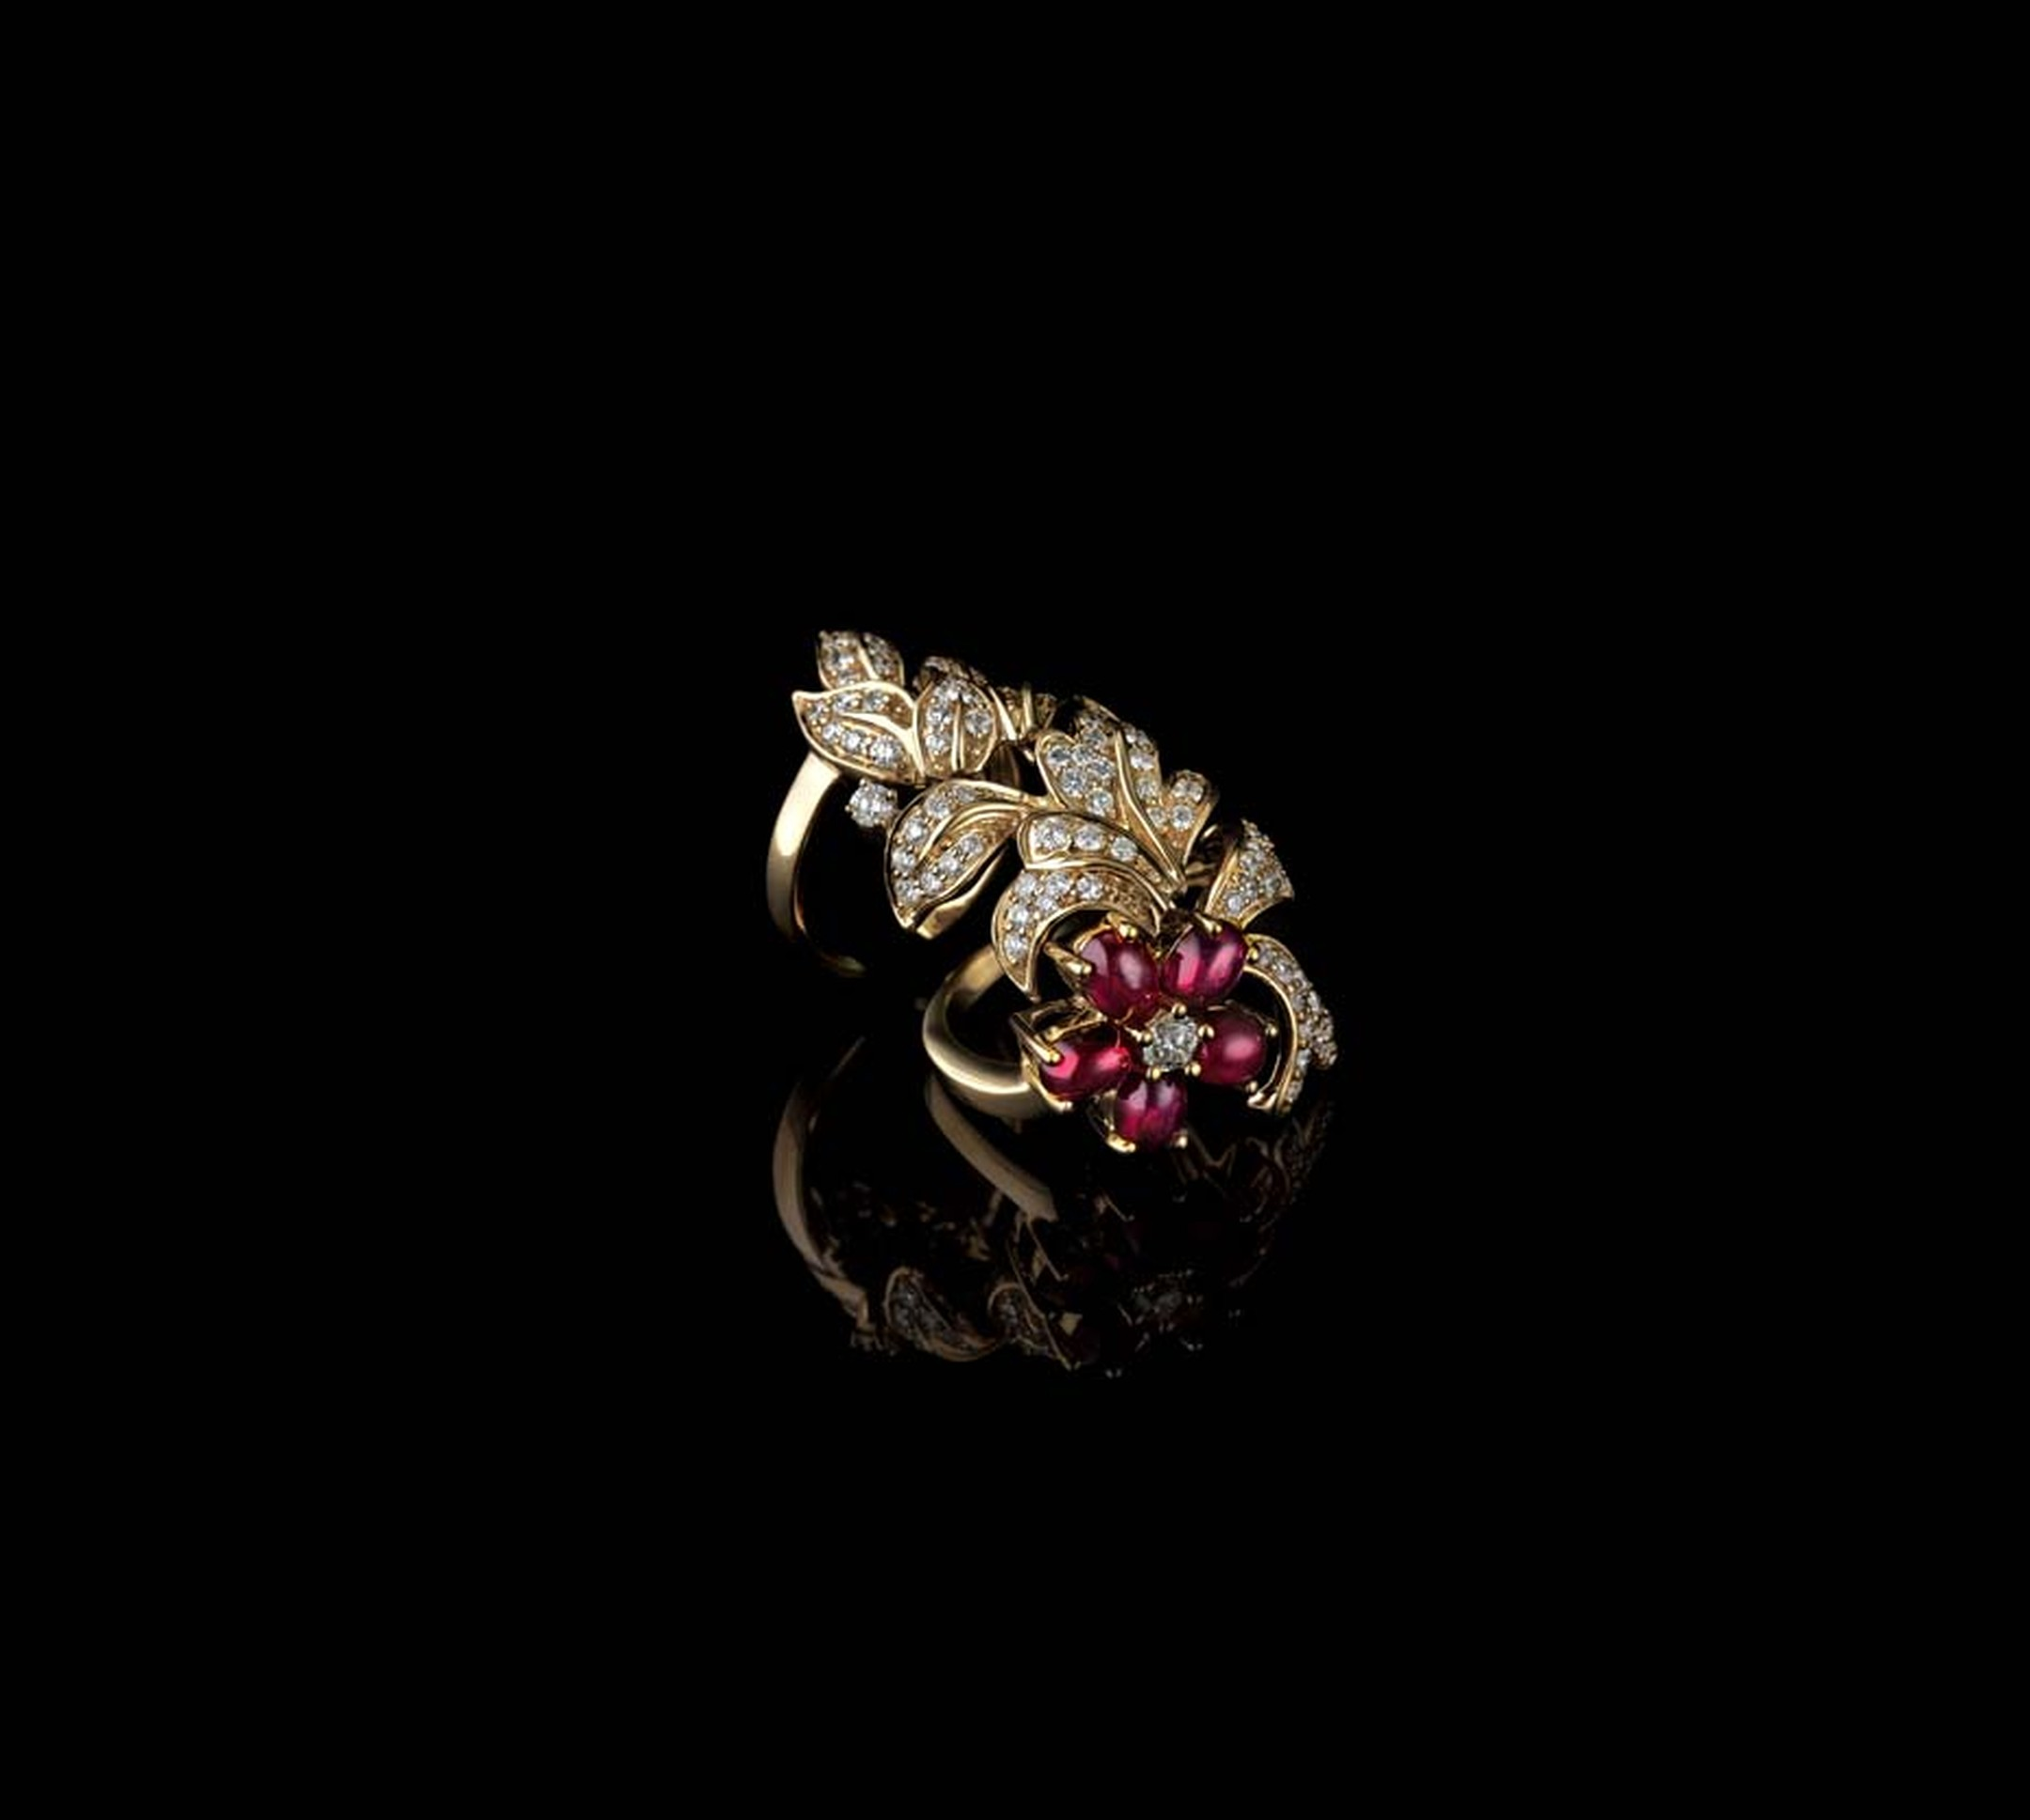 Farah Khan for Tanishq floral motif ruby ring with diamonds set in yellow gold.